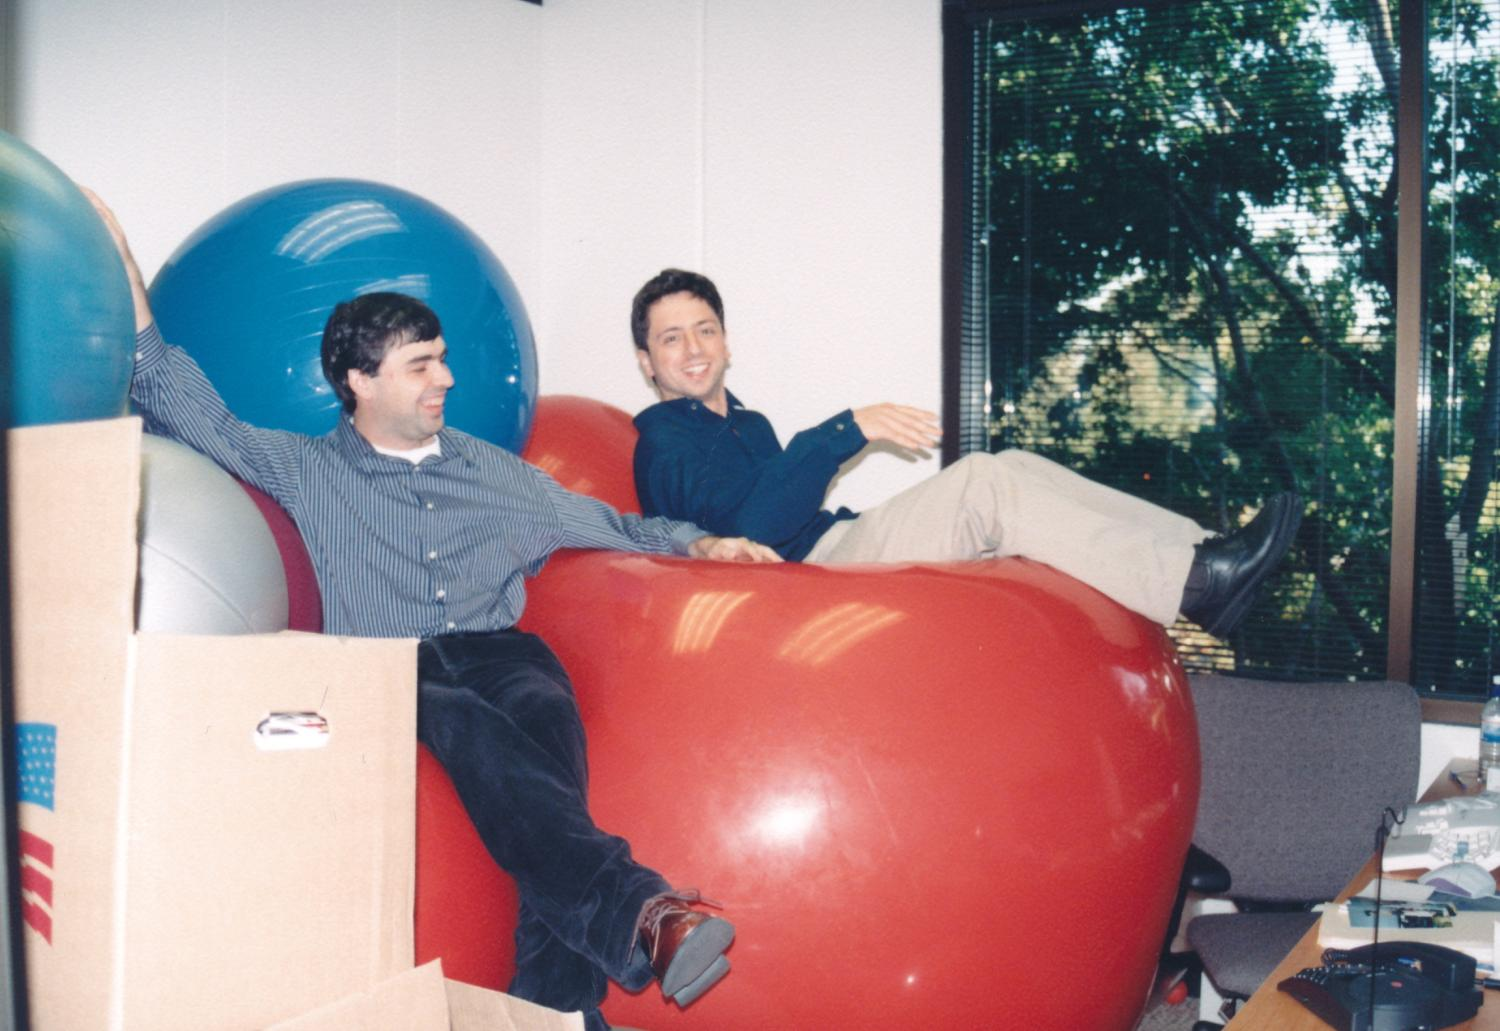 Larry and Sergey relaxing on beanbags after a party